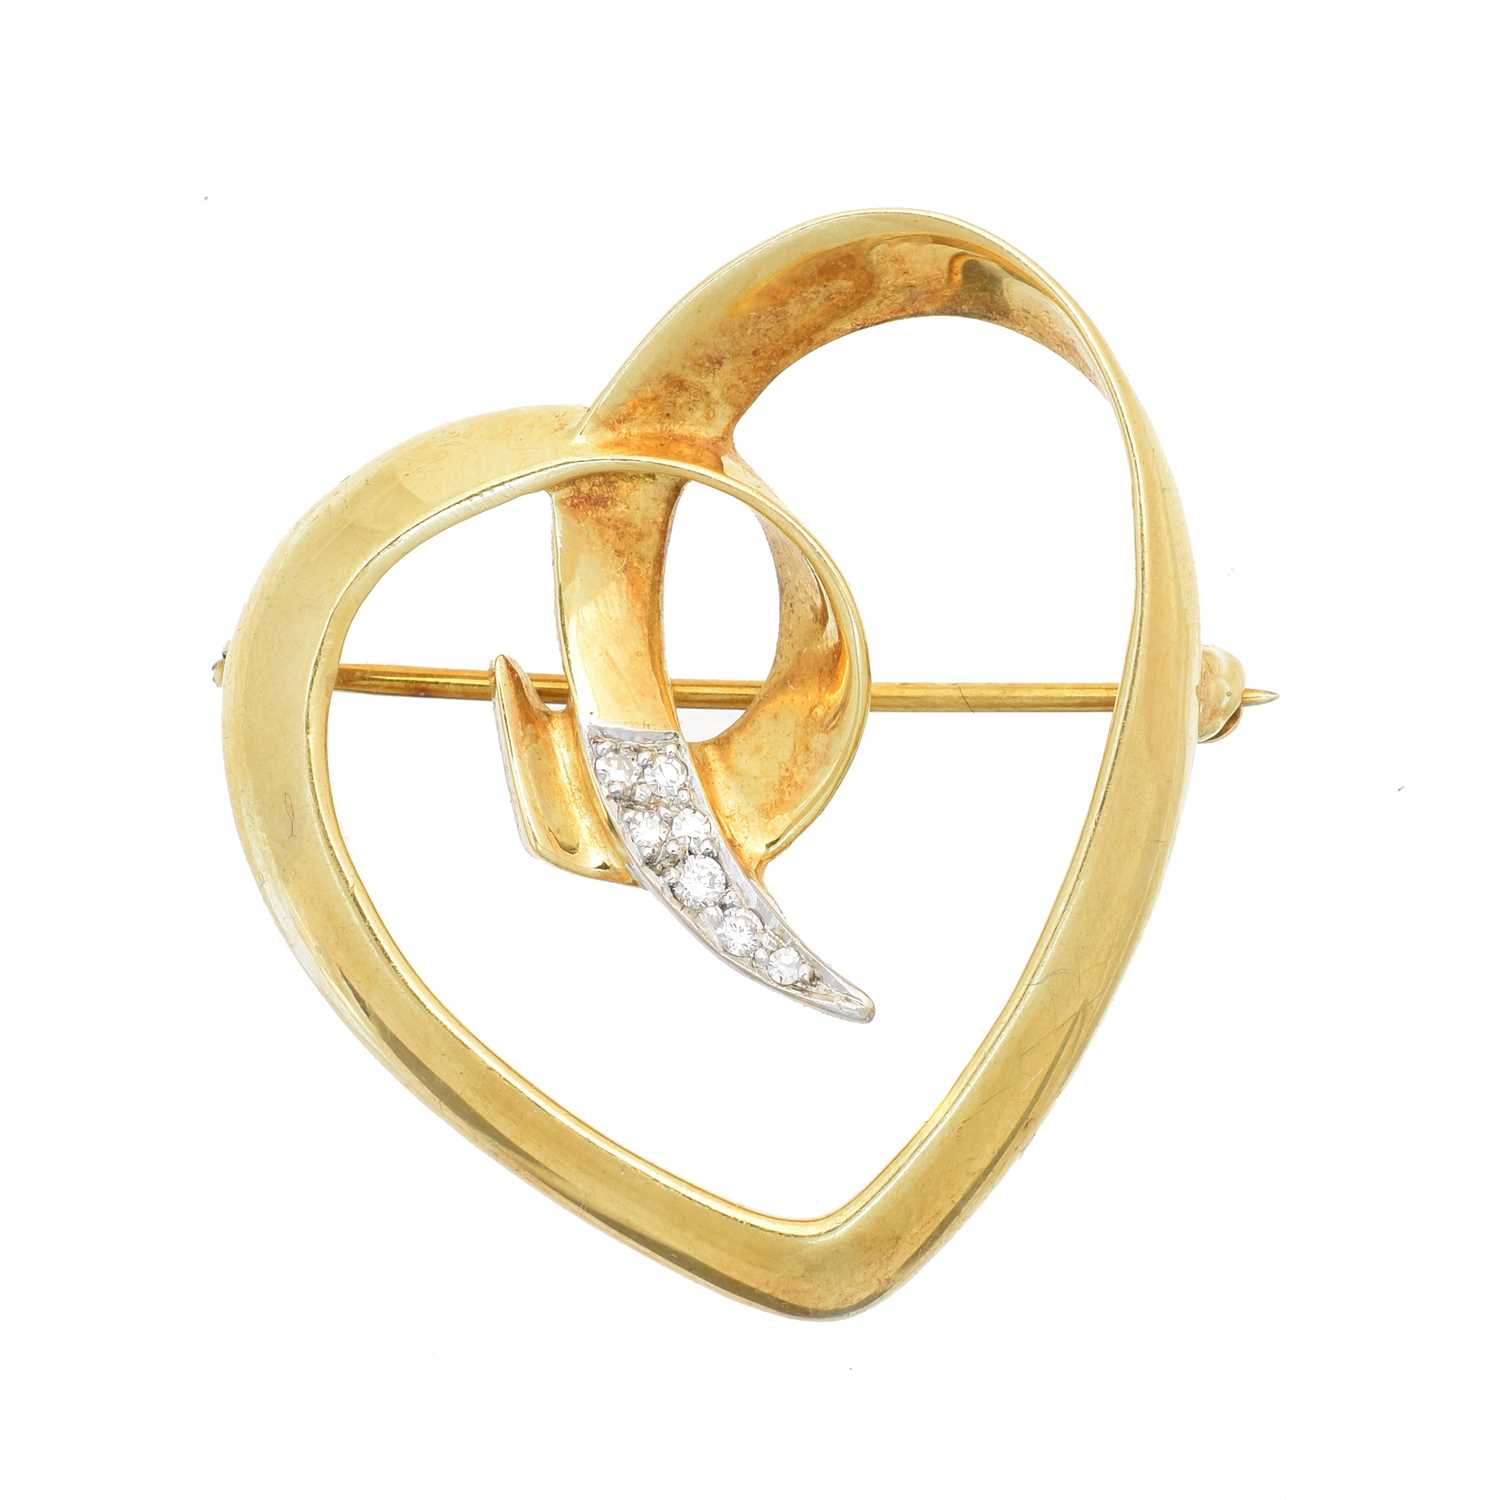 Lot 1 - A 1980s 18ct gold and diamond heart brooch by Paloma Picasso for Tiffany & Co.